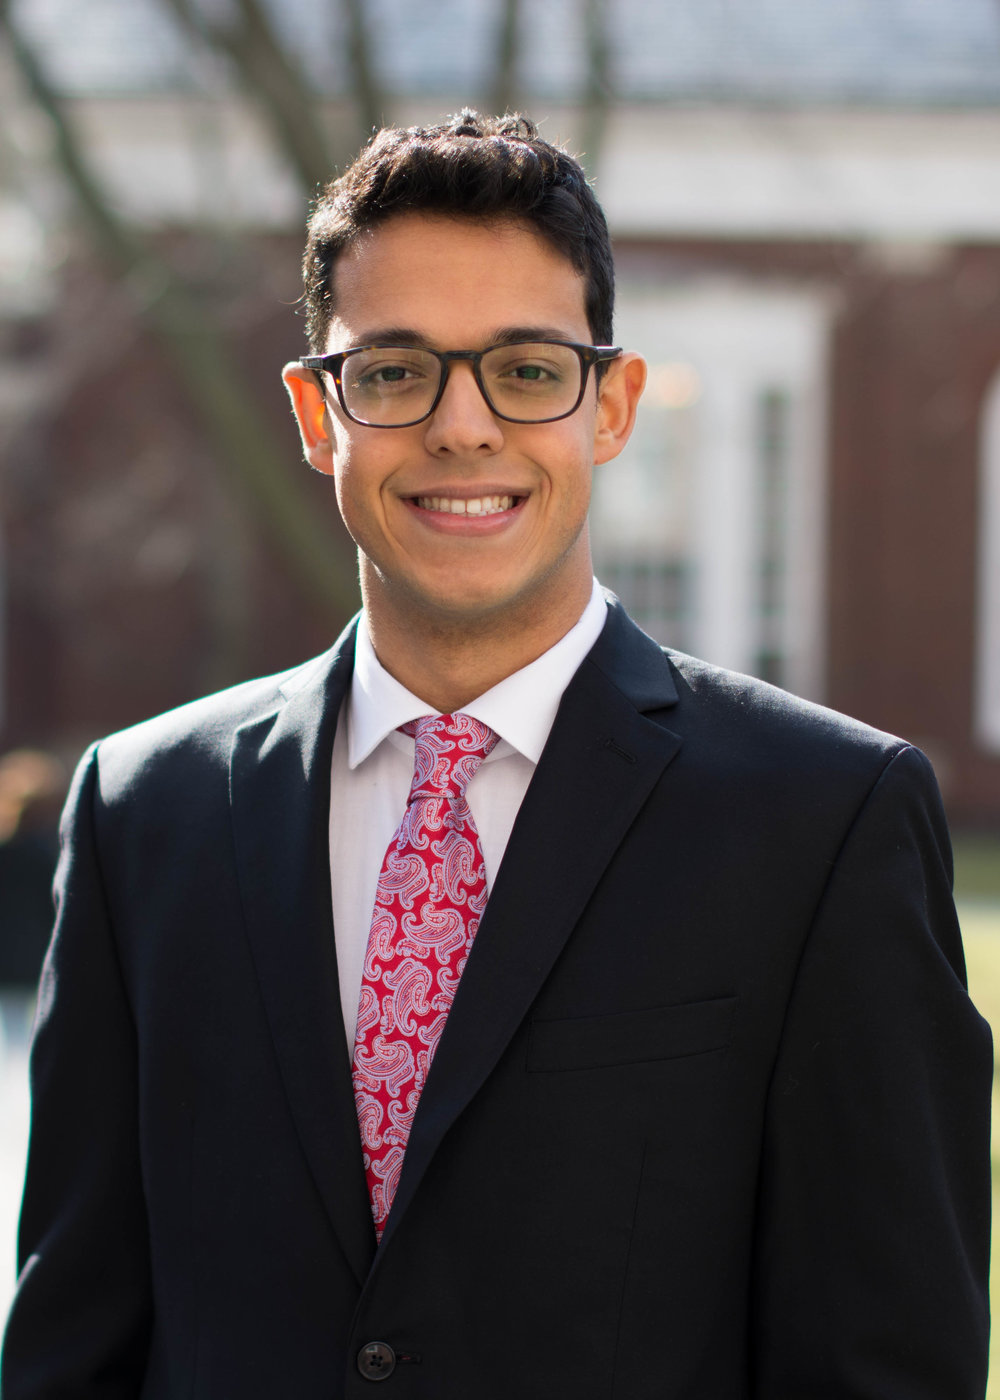 "ALI DASTJERDI '19 | VICE PRESIDENT - Ali is a sophomore living in Currier House studying Statistics and Economics. Outside of HSA, Ali spends his time on campus working with various groups at the Institute of Politics trying to put his passions for quantitative analysis and public policy to good use. A self proclaimed ""foodie"", Ali likes to spend his free time watching Netflix documentaries about food, watching Food Network competitions, cooking up a storm, and of course eating his way through cuisines across the world."